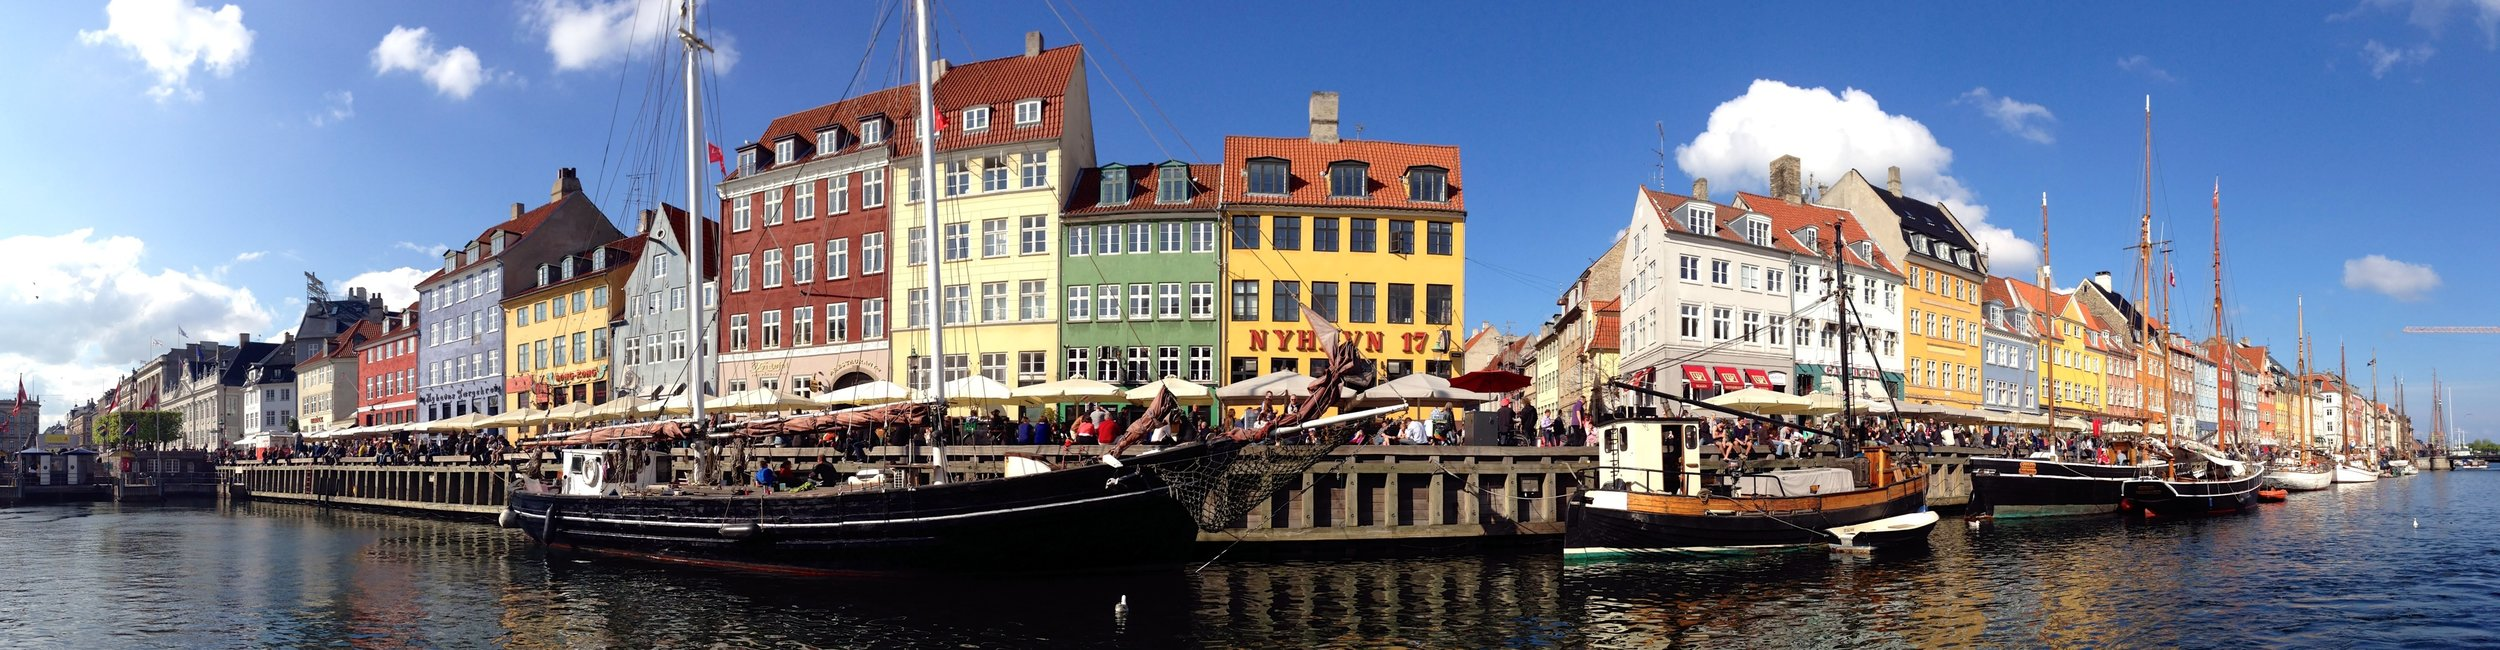 Copenhagen Nyhavn new harbor panorama